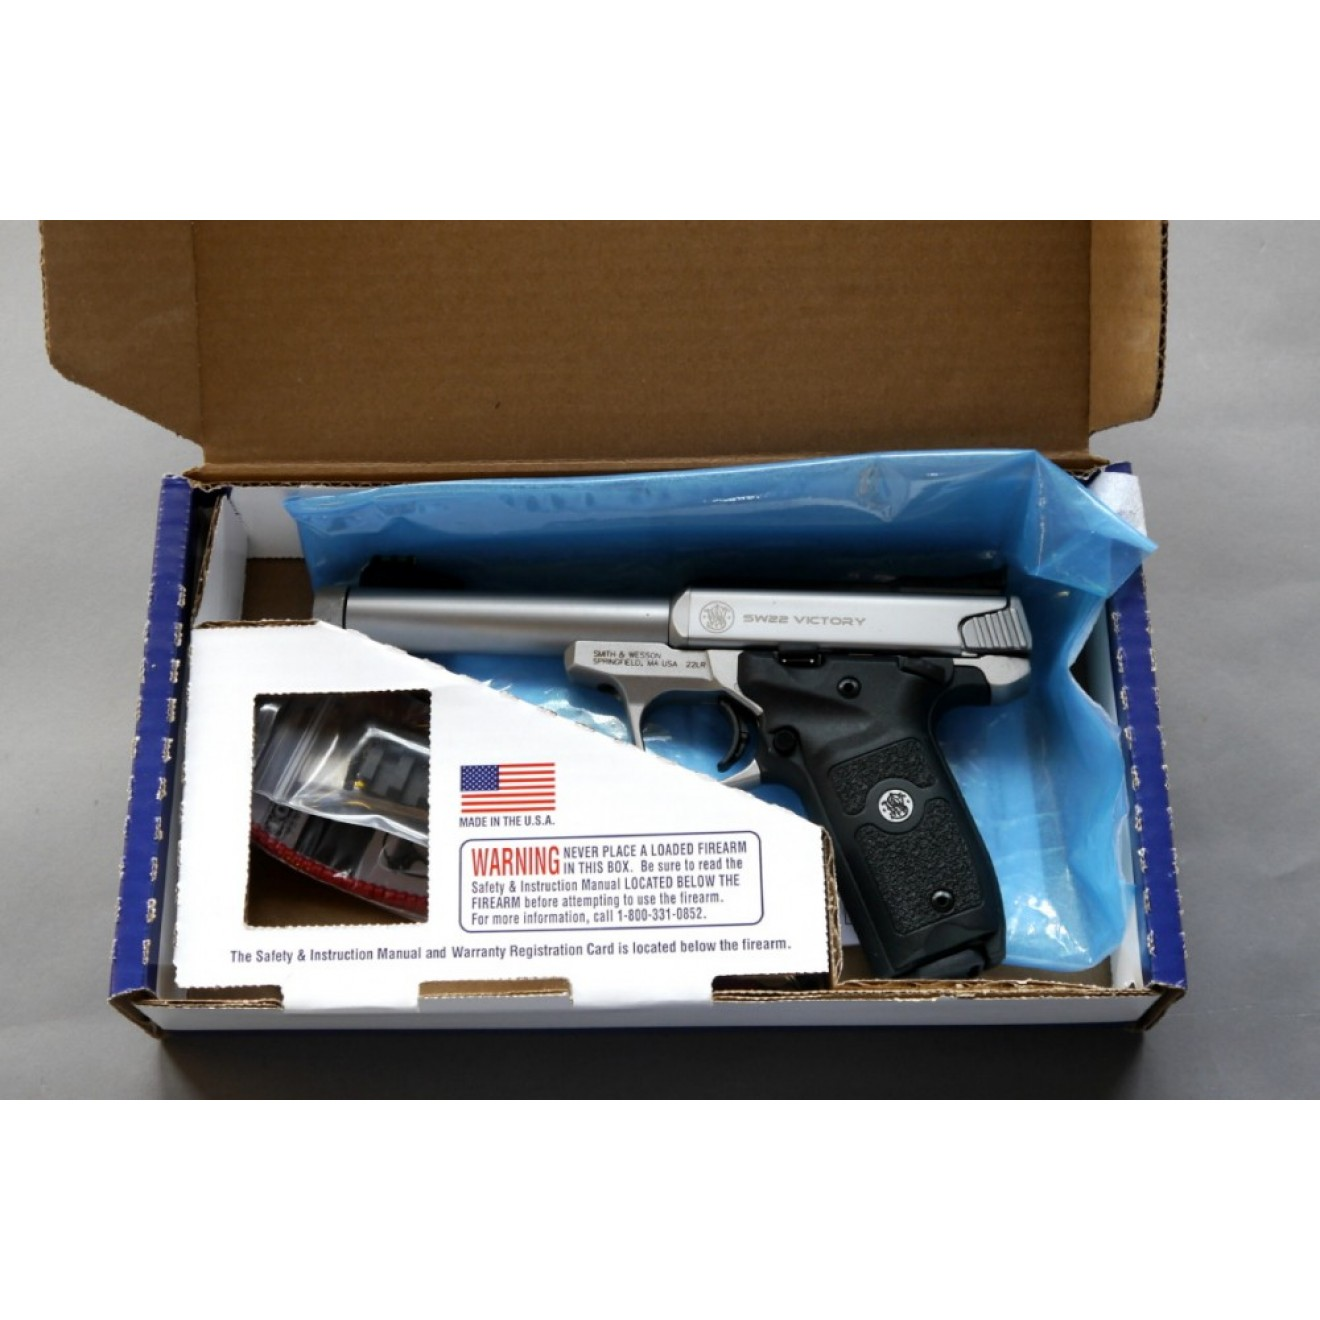 Smith & Wesson SW22 VICTORY SD